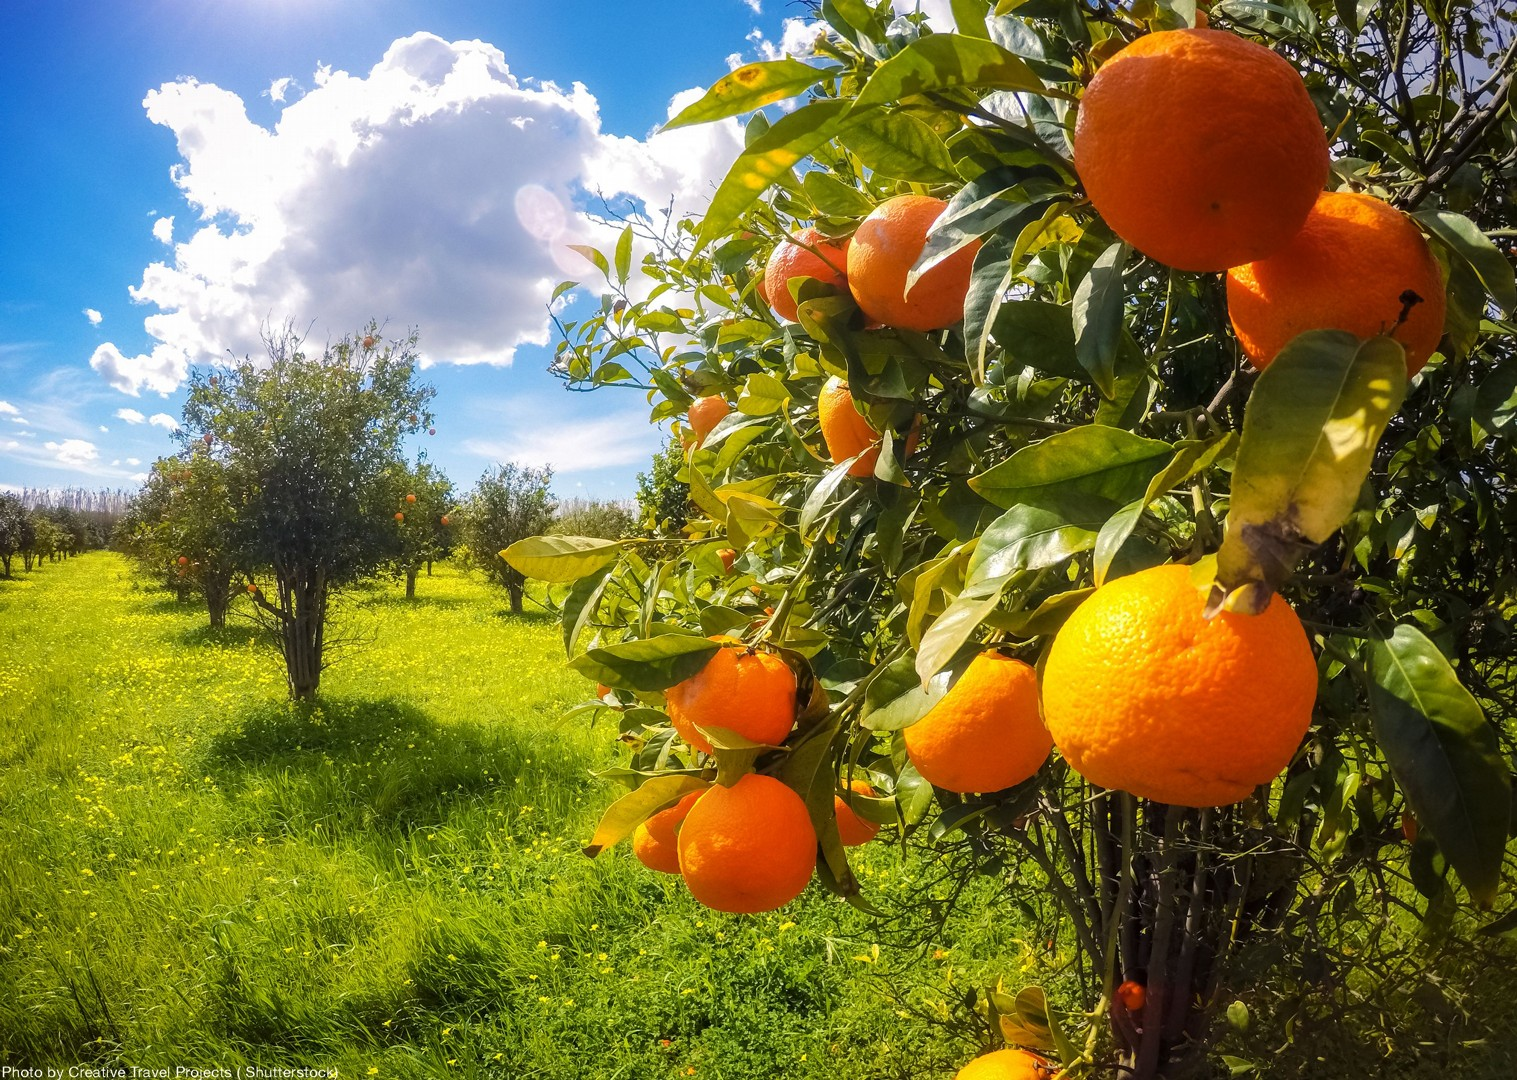 local-nature-orchards-italy-leisure-biking-fun.jpg - Italy - Sicily - Self-Guided Leisure Cycling Holiday - Leisure Cycling